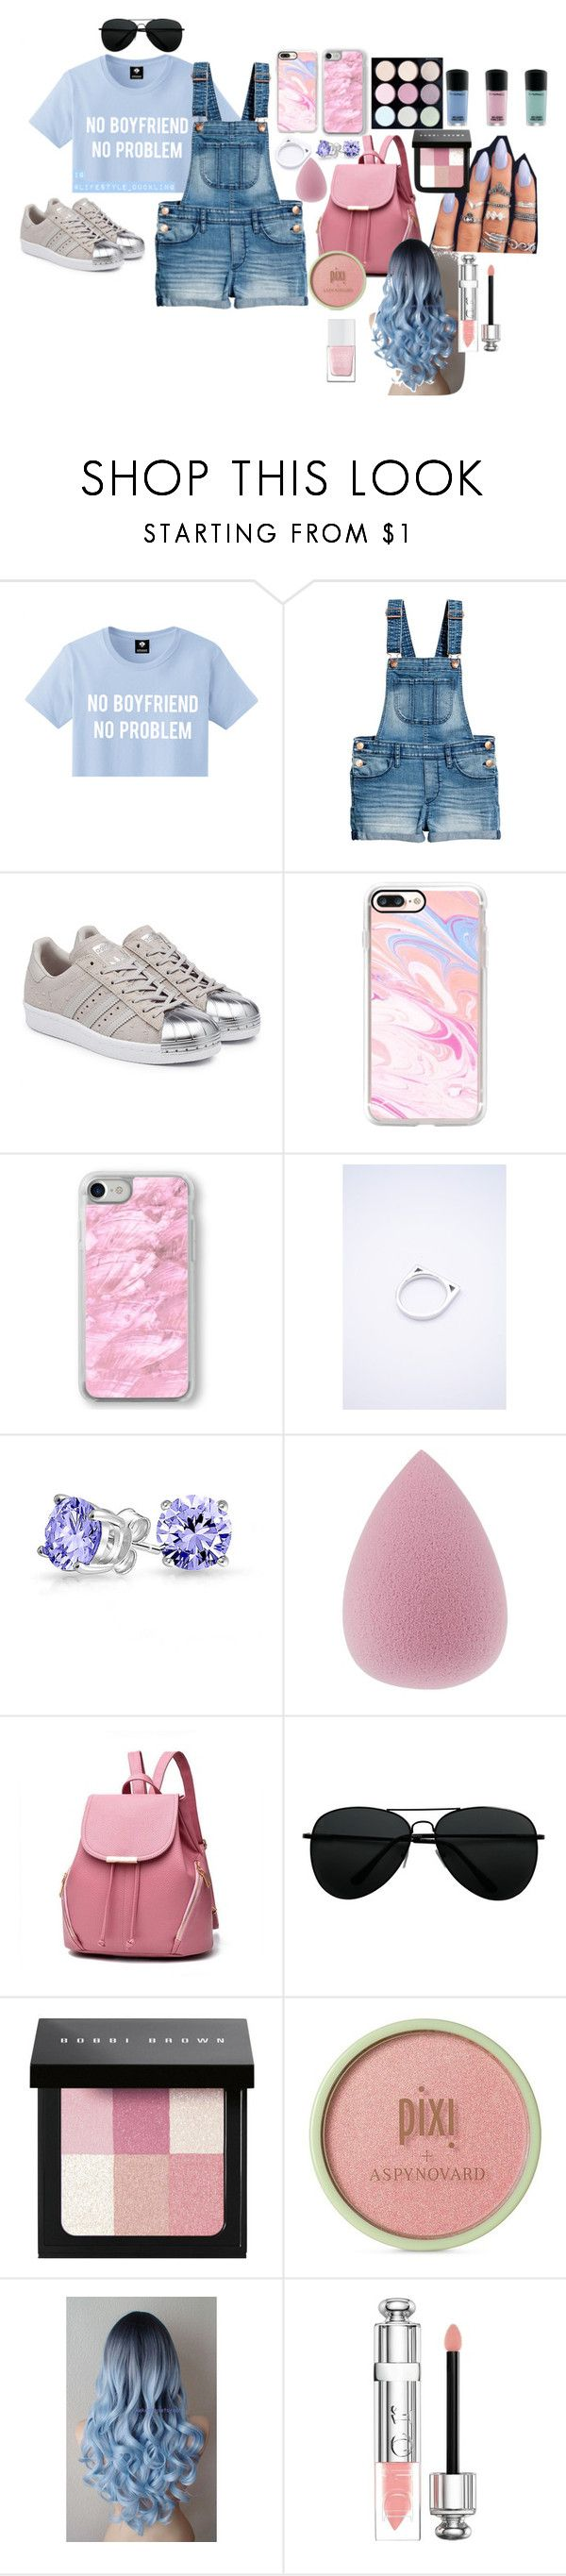 """""""Pastel Outfit"""" by lifestyle1duckling ❤ liked on Polyvore featuring adidas Originals, Casetify, Recover, Bling Jewelry, Bobbi Brown Cosmetics, Pixi, Christian Dior, The Hand & Foot Spa, outfit and pastel"""